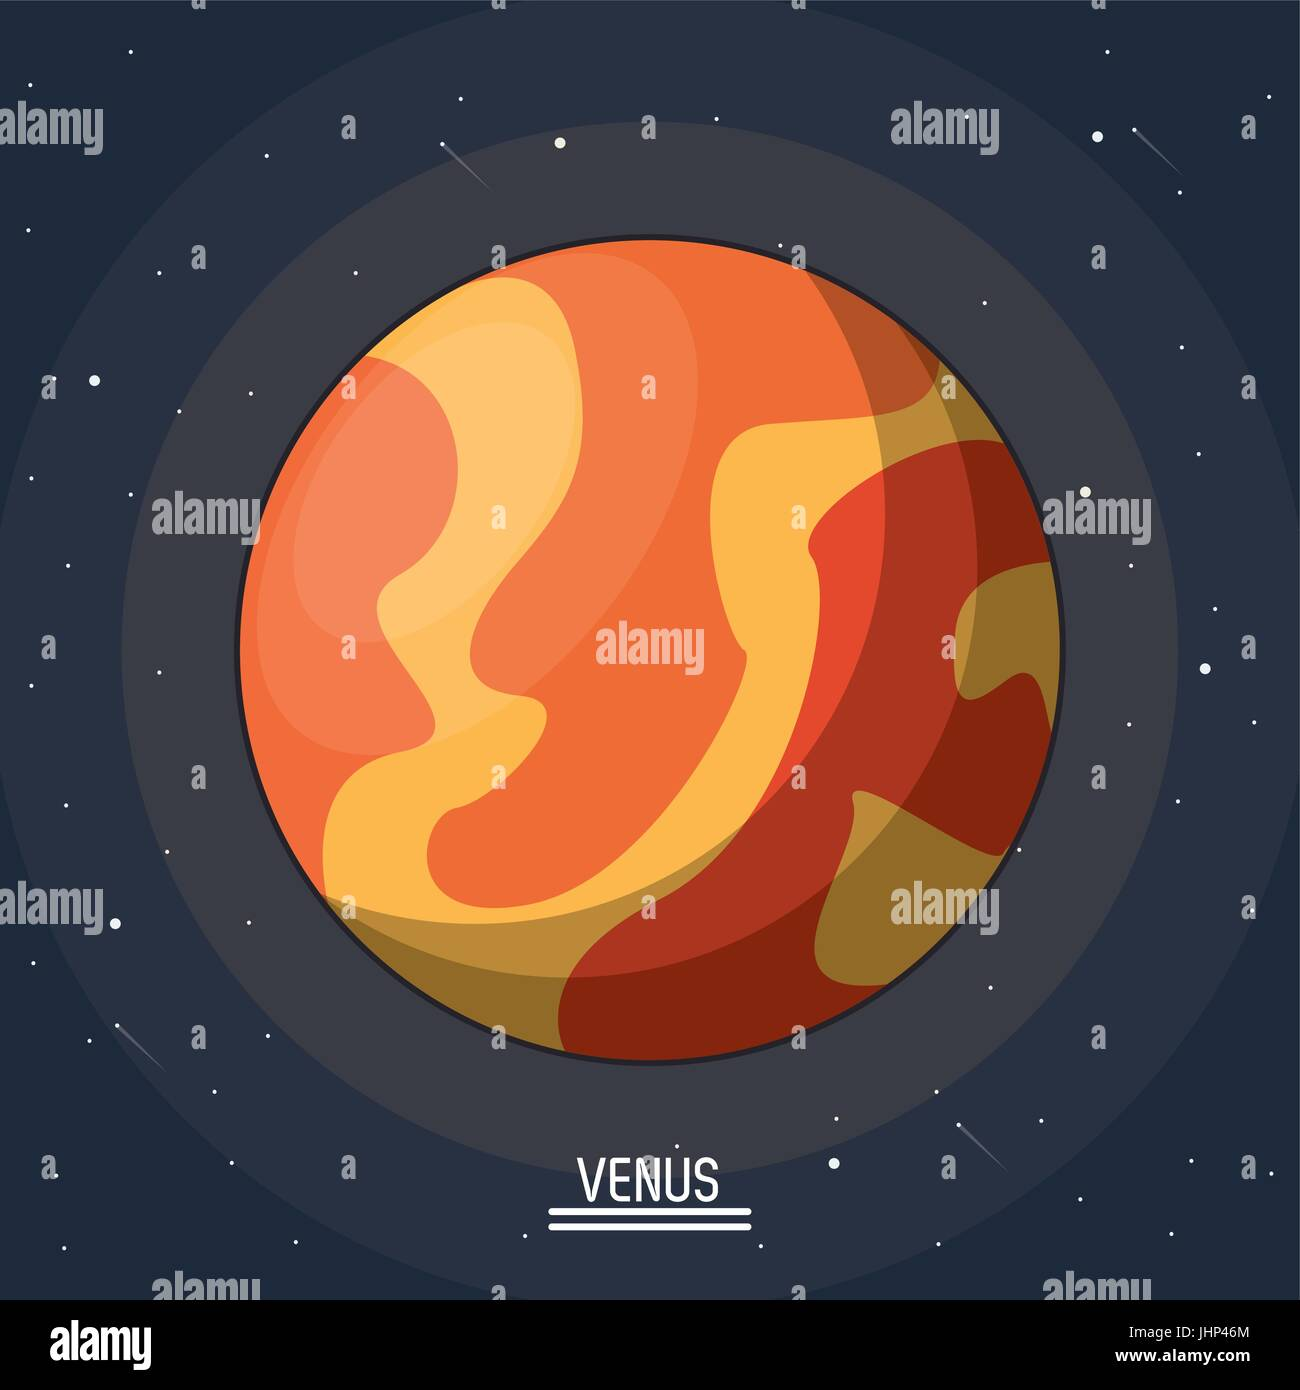 colorful poster of the planet venus in the space - Stock Image